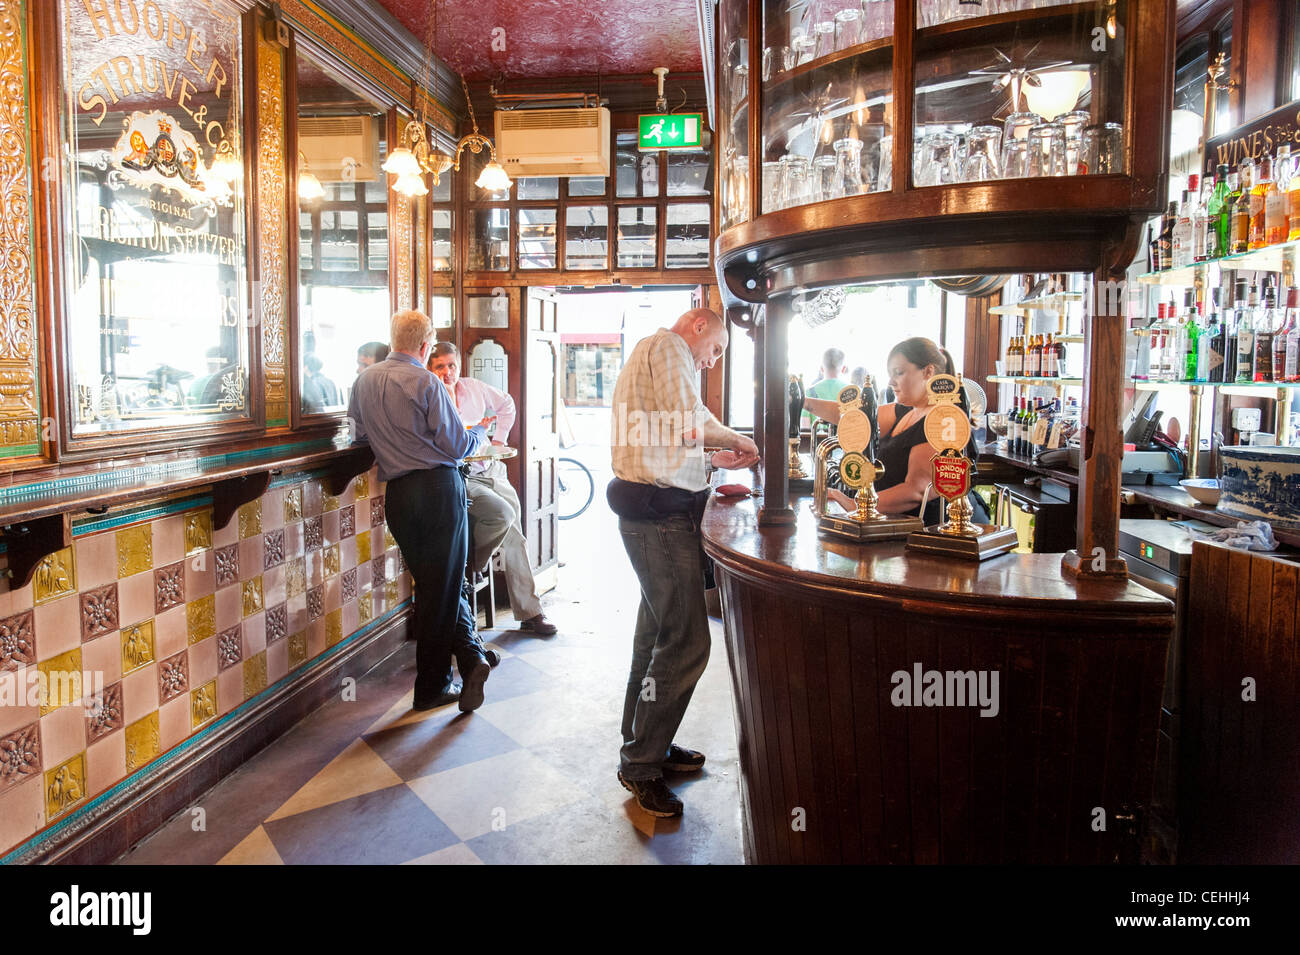 The Dog and Duck pub, Soho, London, England, UK - Stock Image